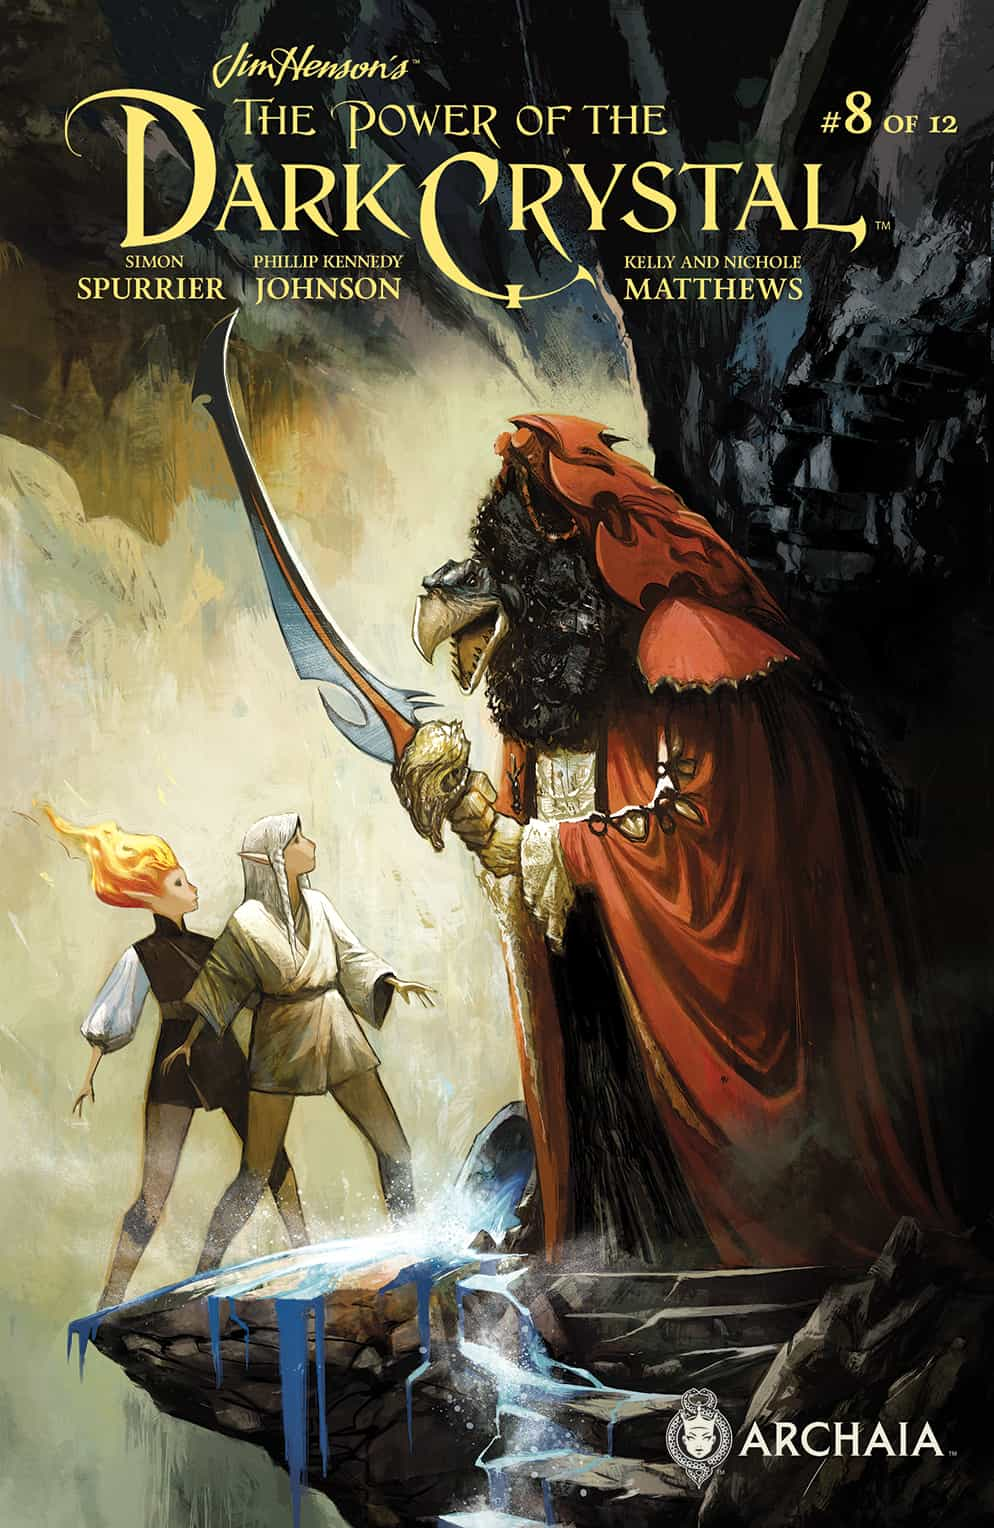 The Power of the Dark Crystal #8 (of 12)